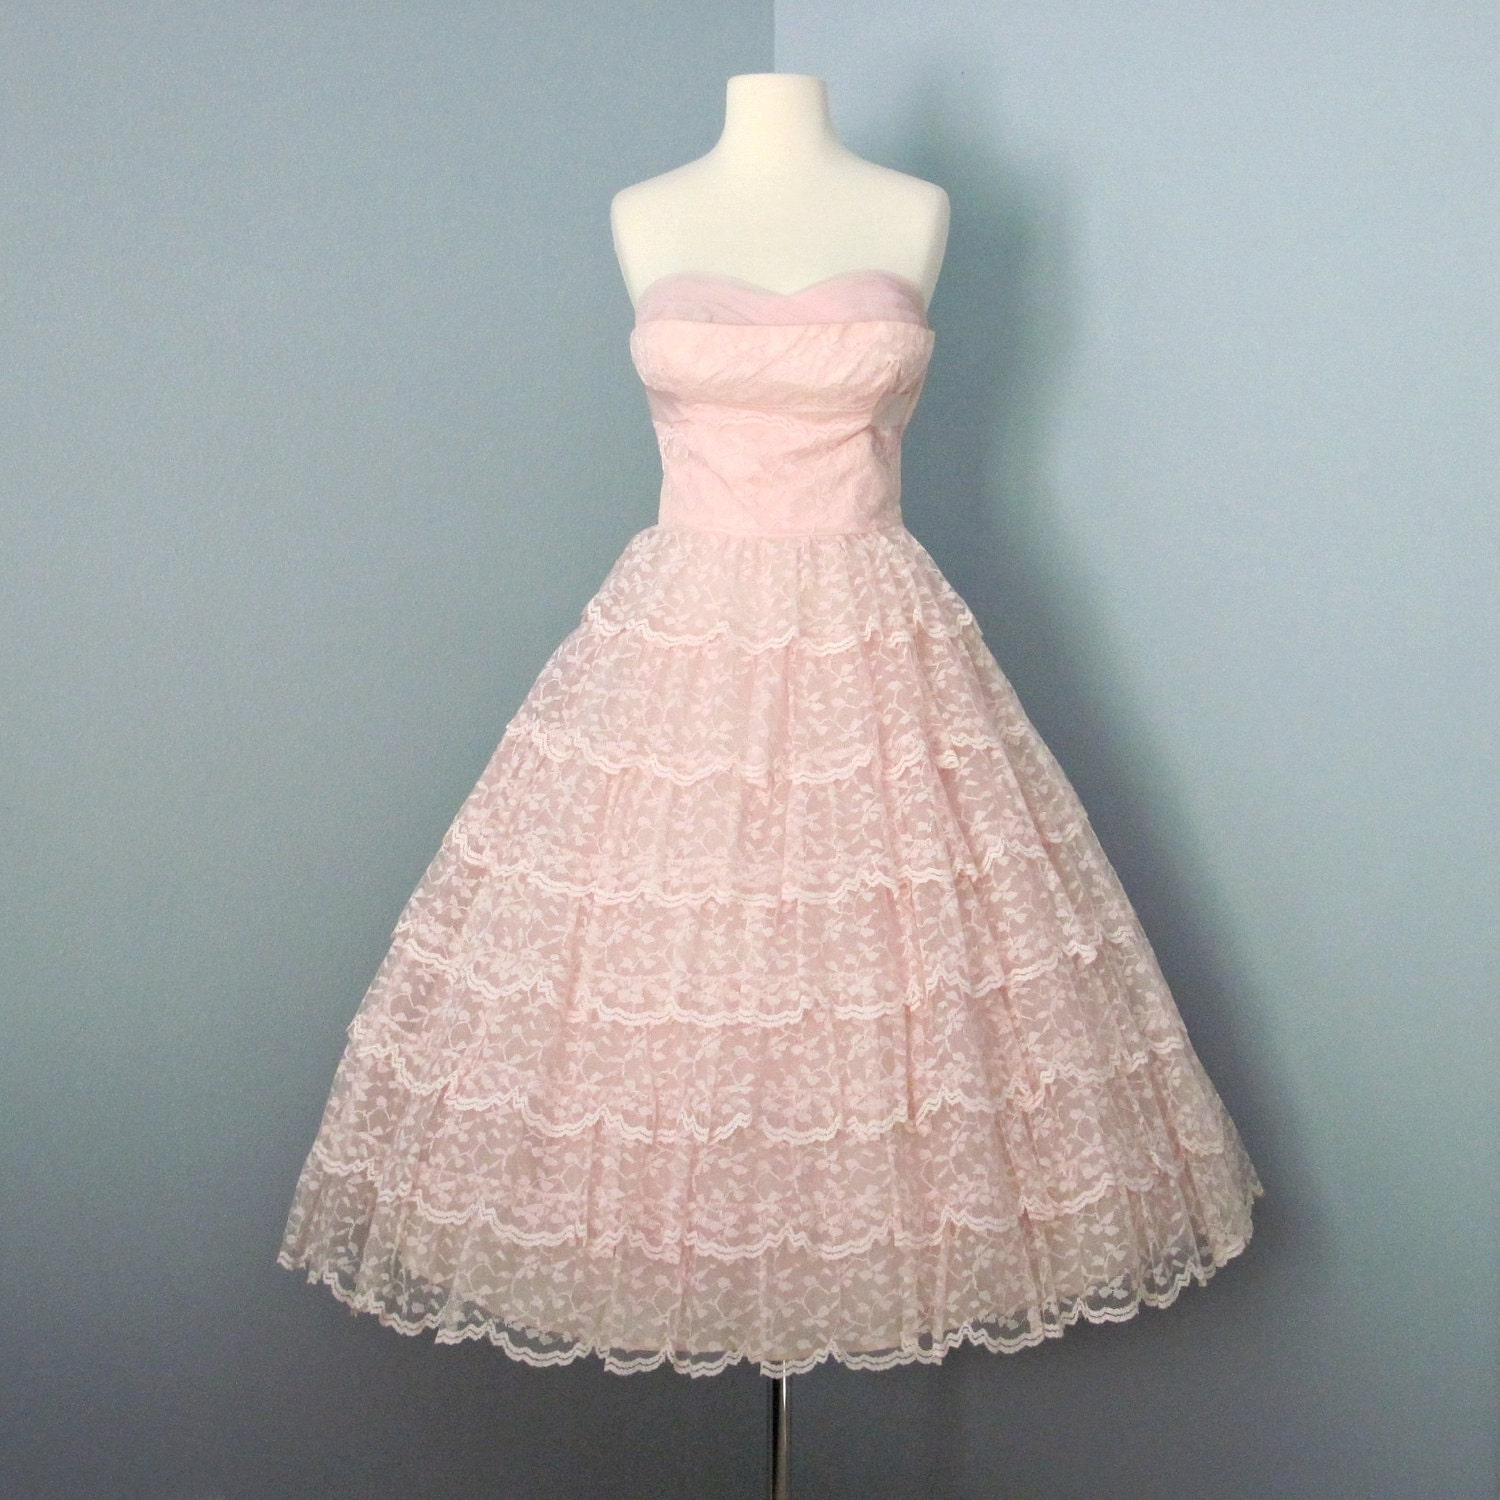 1950s prom dress pale pink vintage lace tulle wedding by deomas